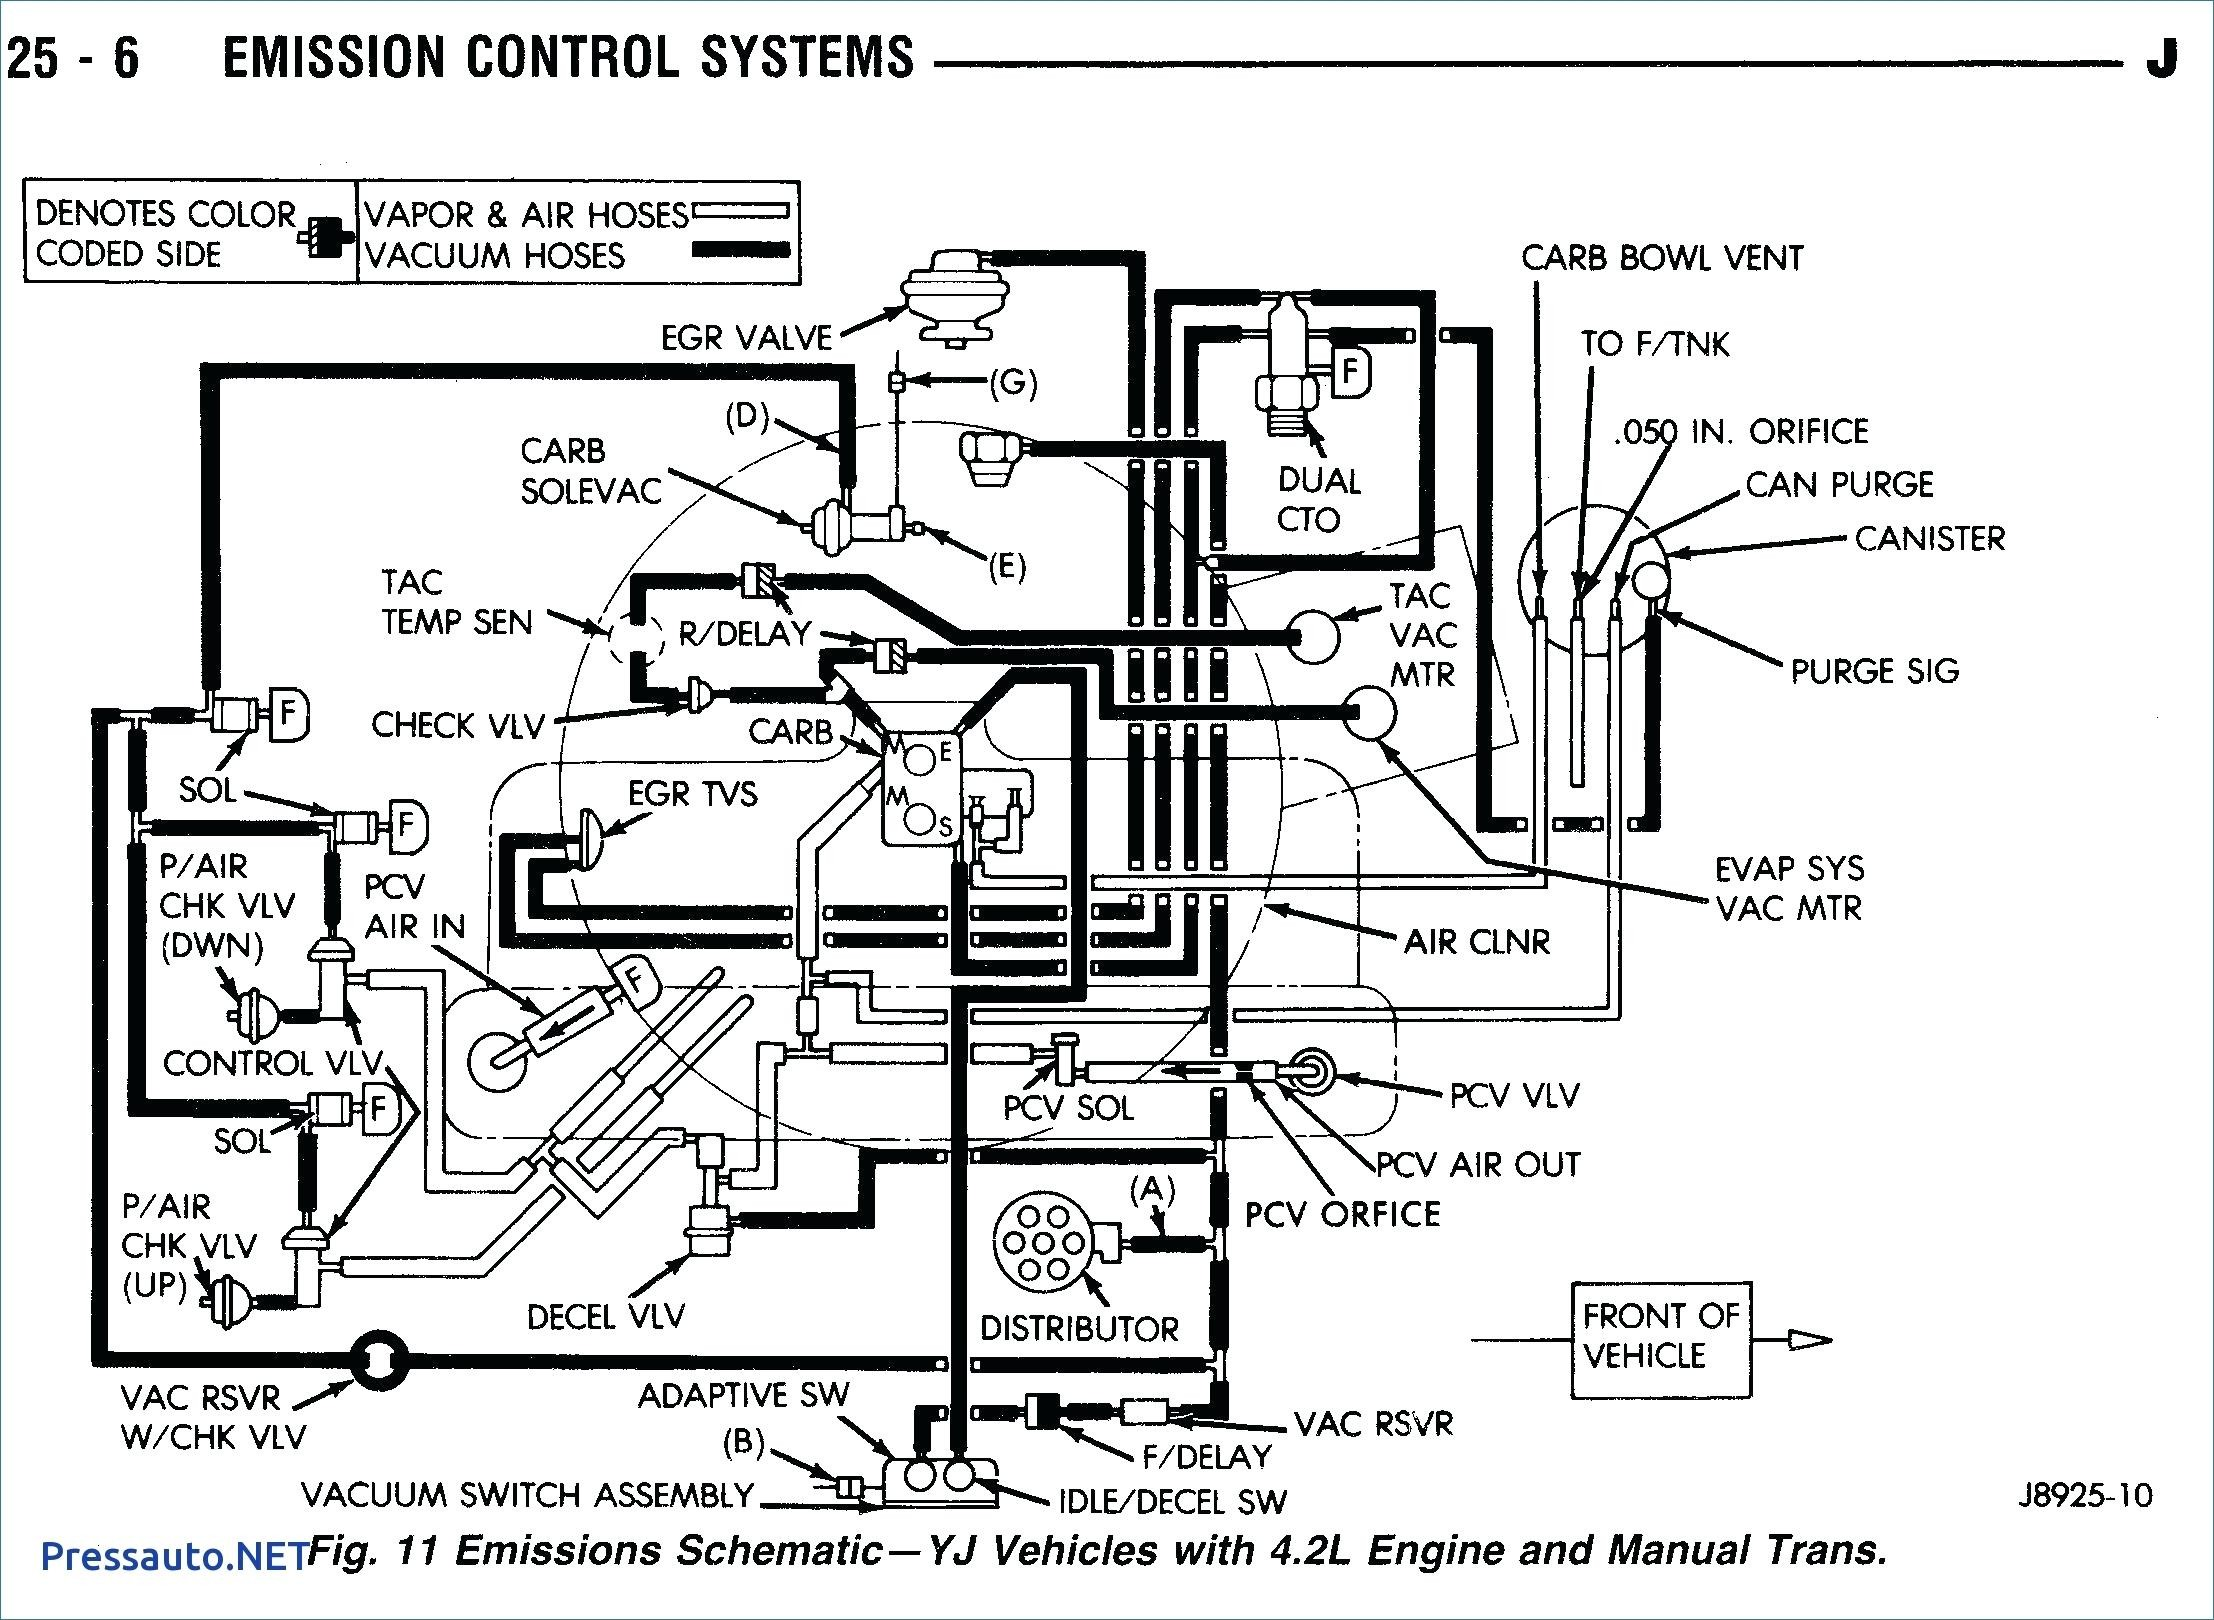 97 Jeep Wrangler Wiring Diagram 90 Jeep Wrangler Wiring Diagram 1990 Electrical Schematic Car Fuel Of 97 Jeep Wrangler Wiring Diagram